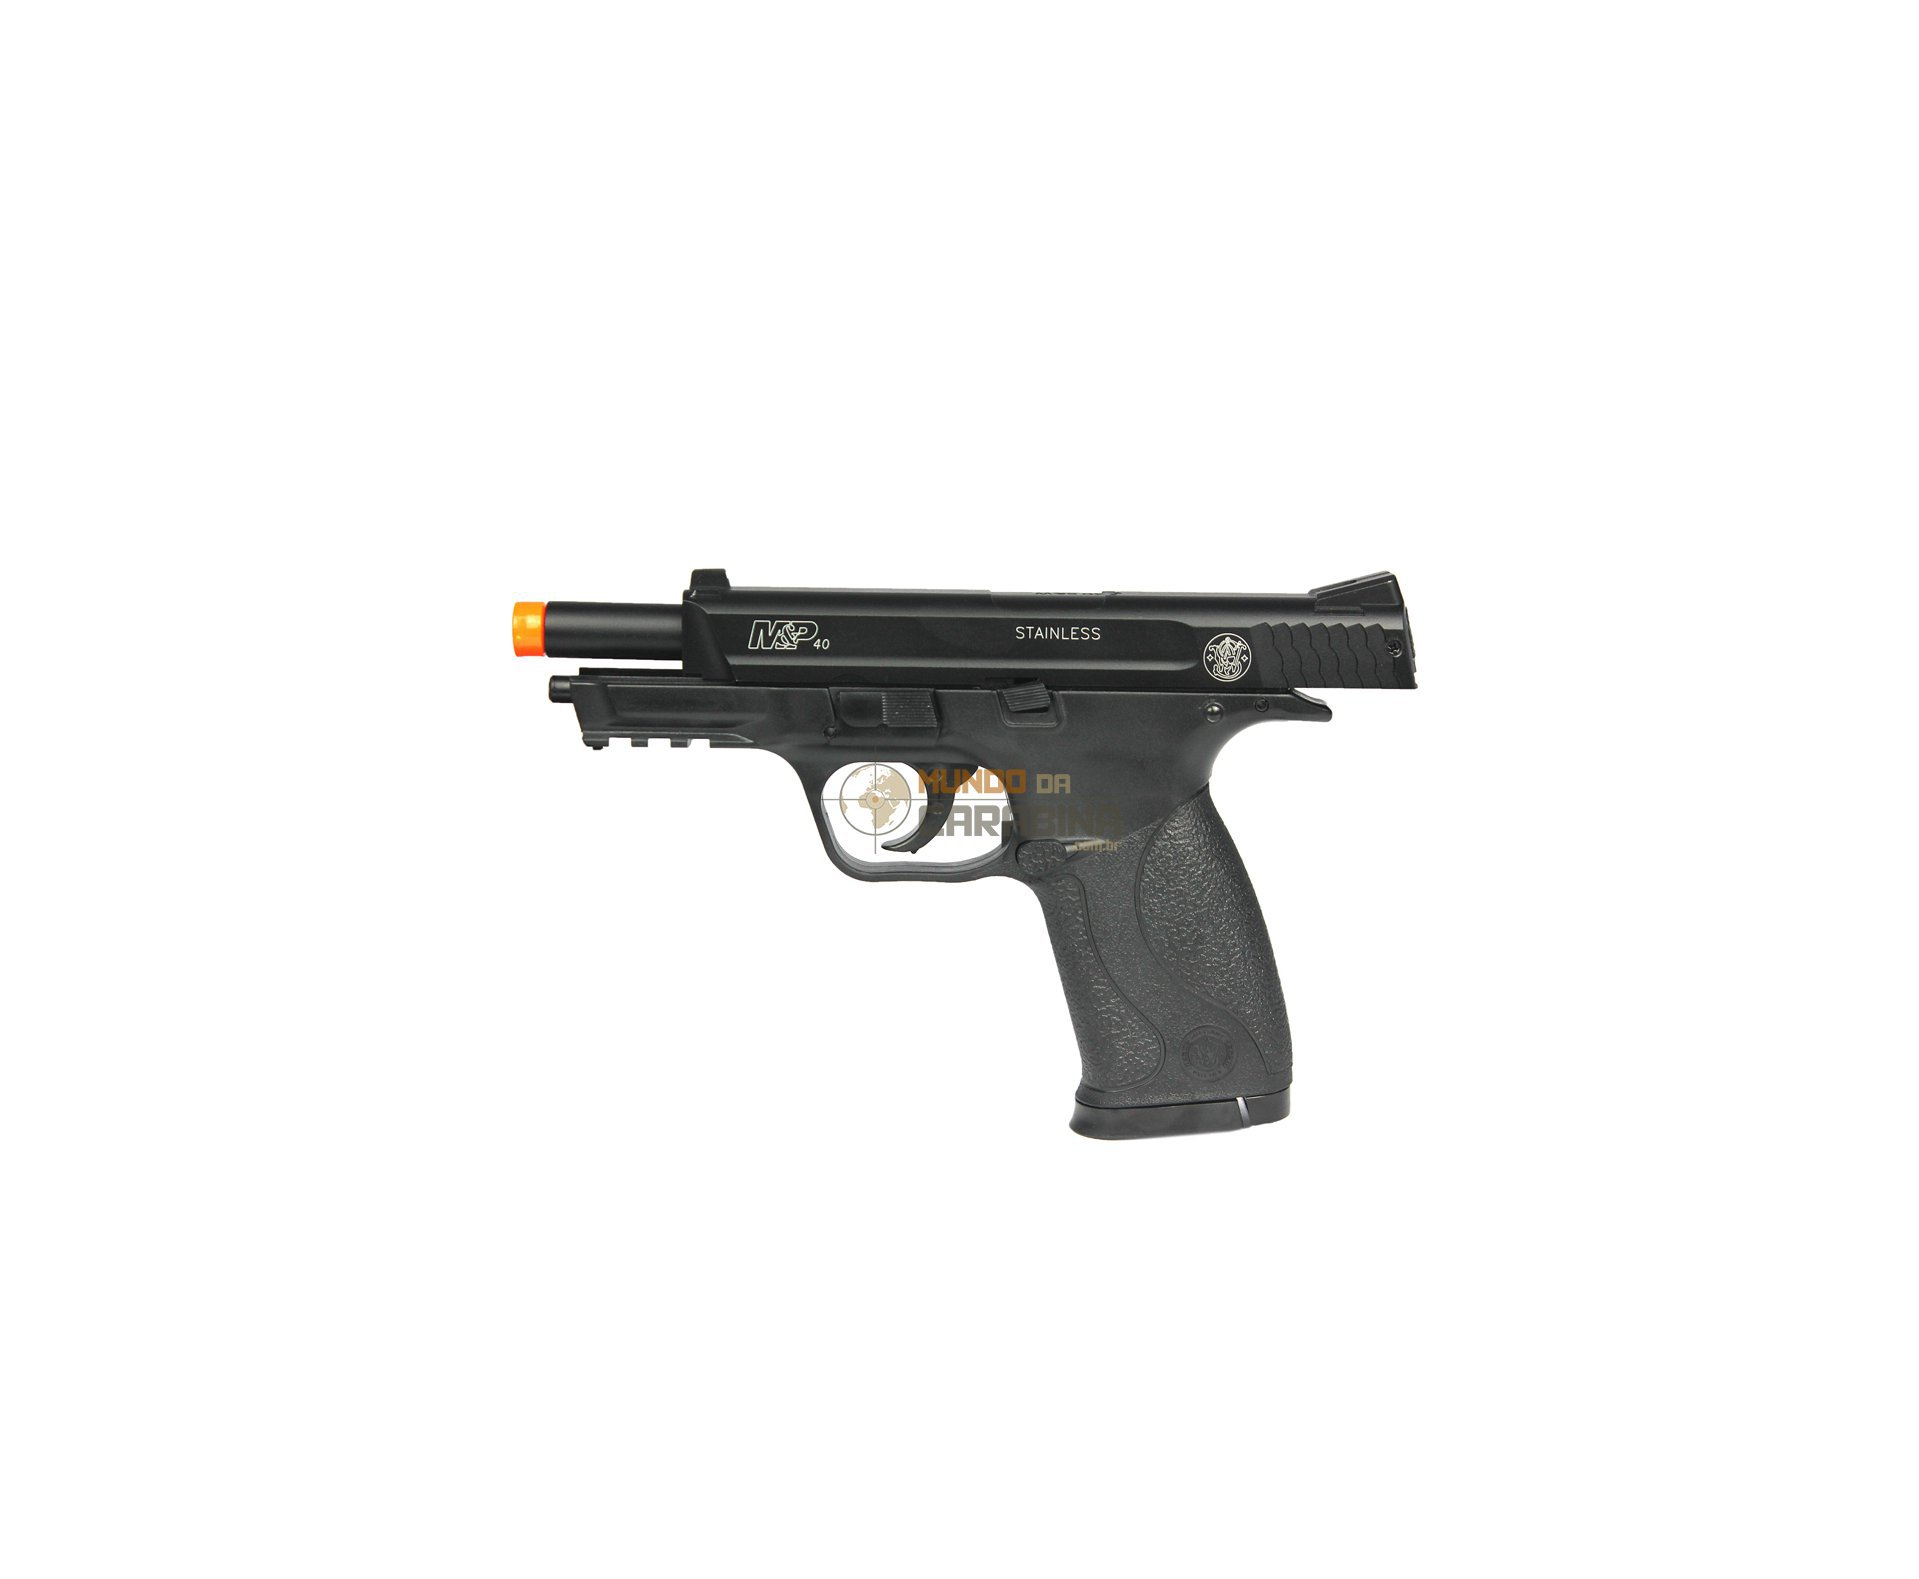 Pistola De Airsoft Smith&wesson Mp 40 - Semi Metal - Cal 6,0 Mm - Cyber Gun